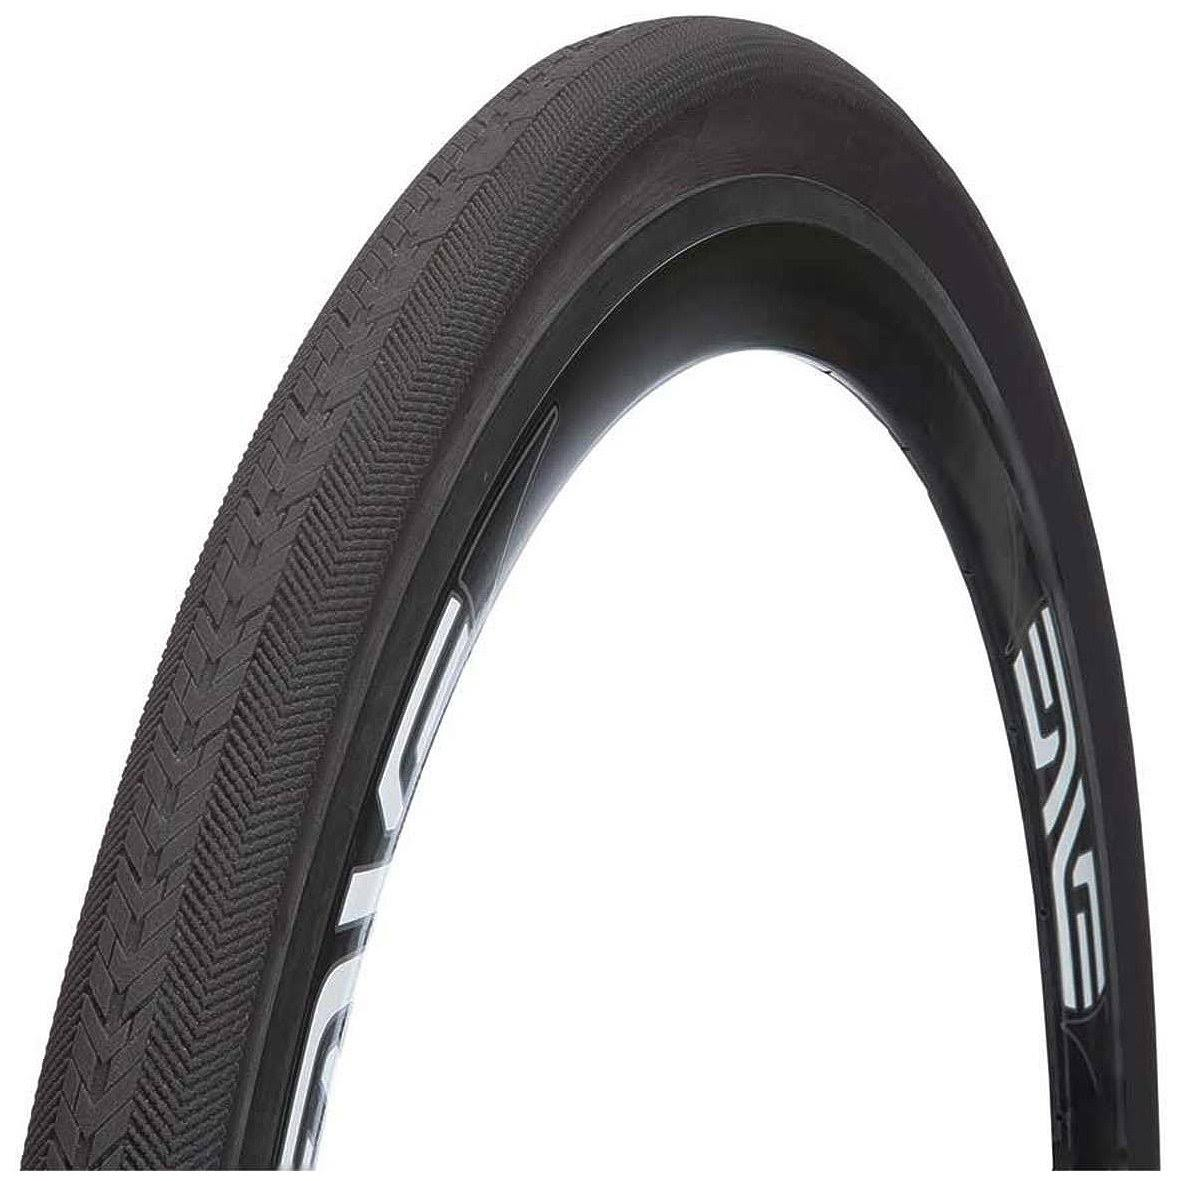 Clement Strada USH Tubeless Ready Tire - 700 x 32mm, Black